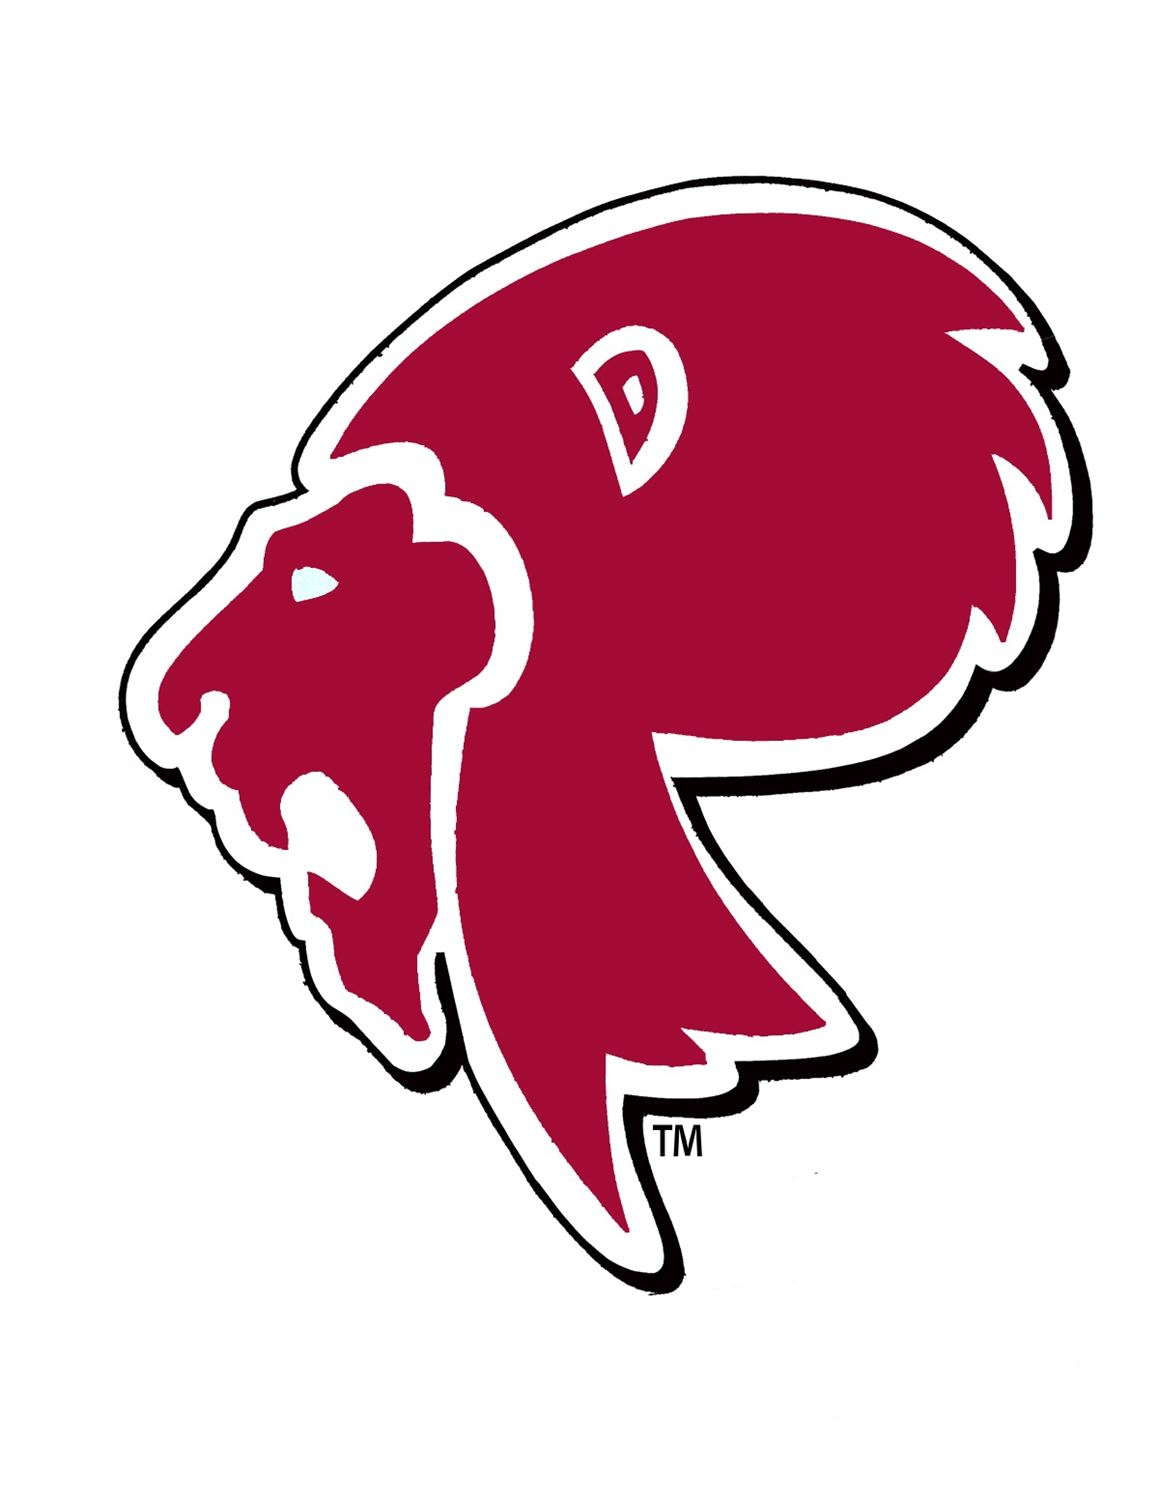 Boys Varsity Football Prattville High School Prattville Alabama Football Hudl